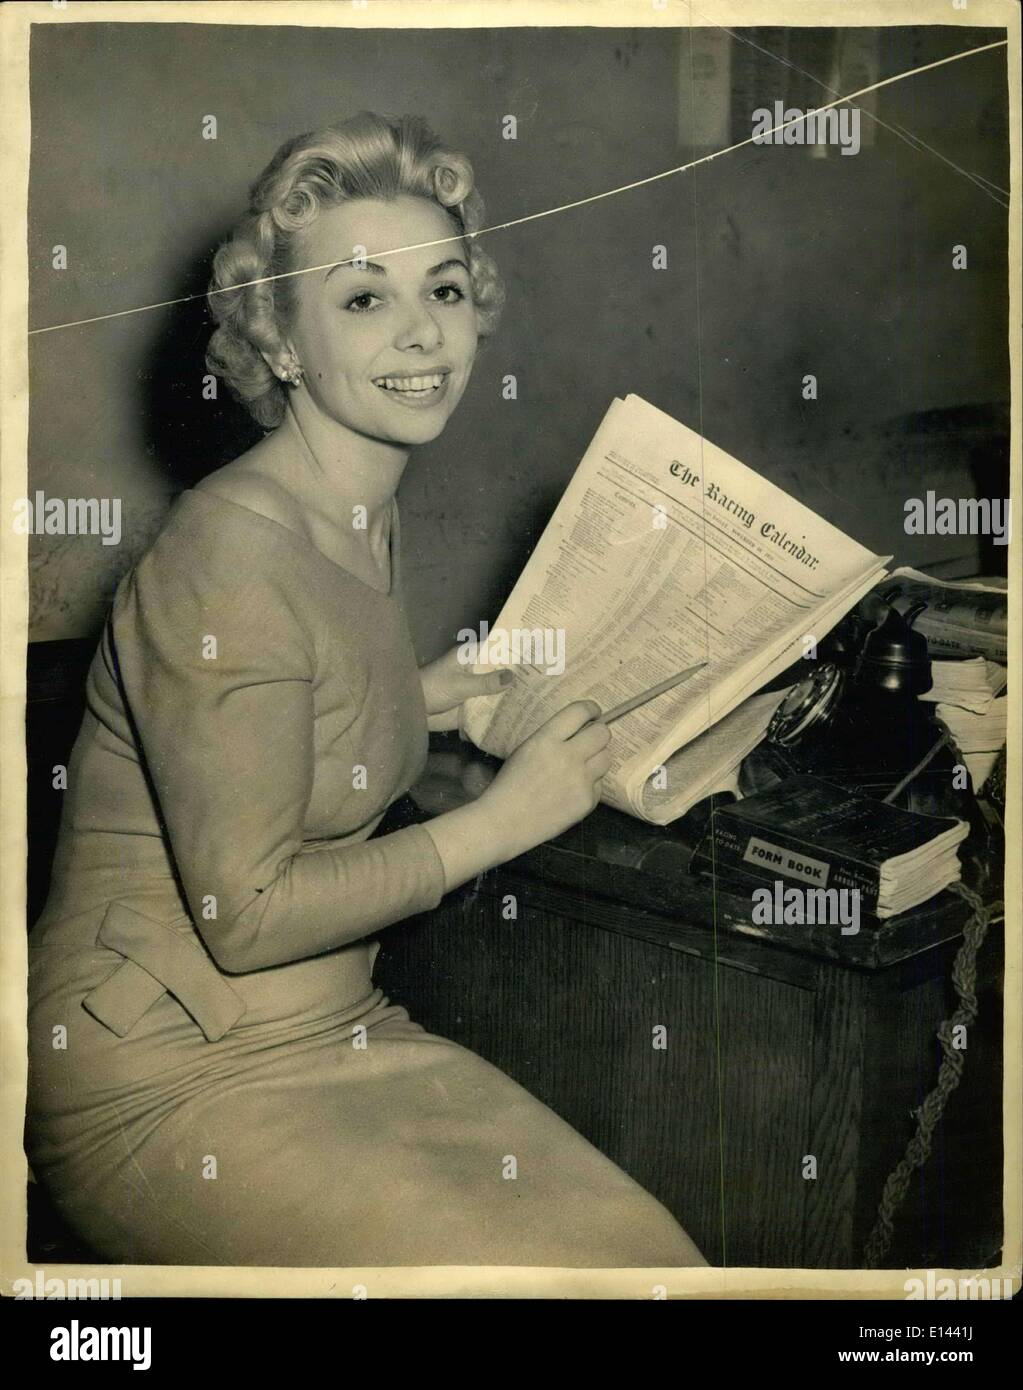 Apr. 04, 2012 - Photo Shows: Jo Ann Matthews the blonde bookmaker. - Stock Image